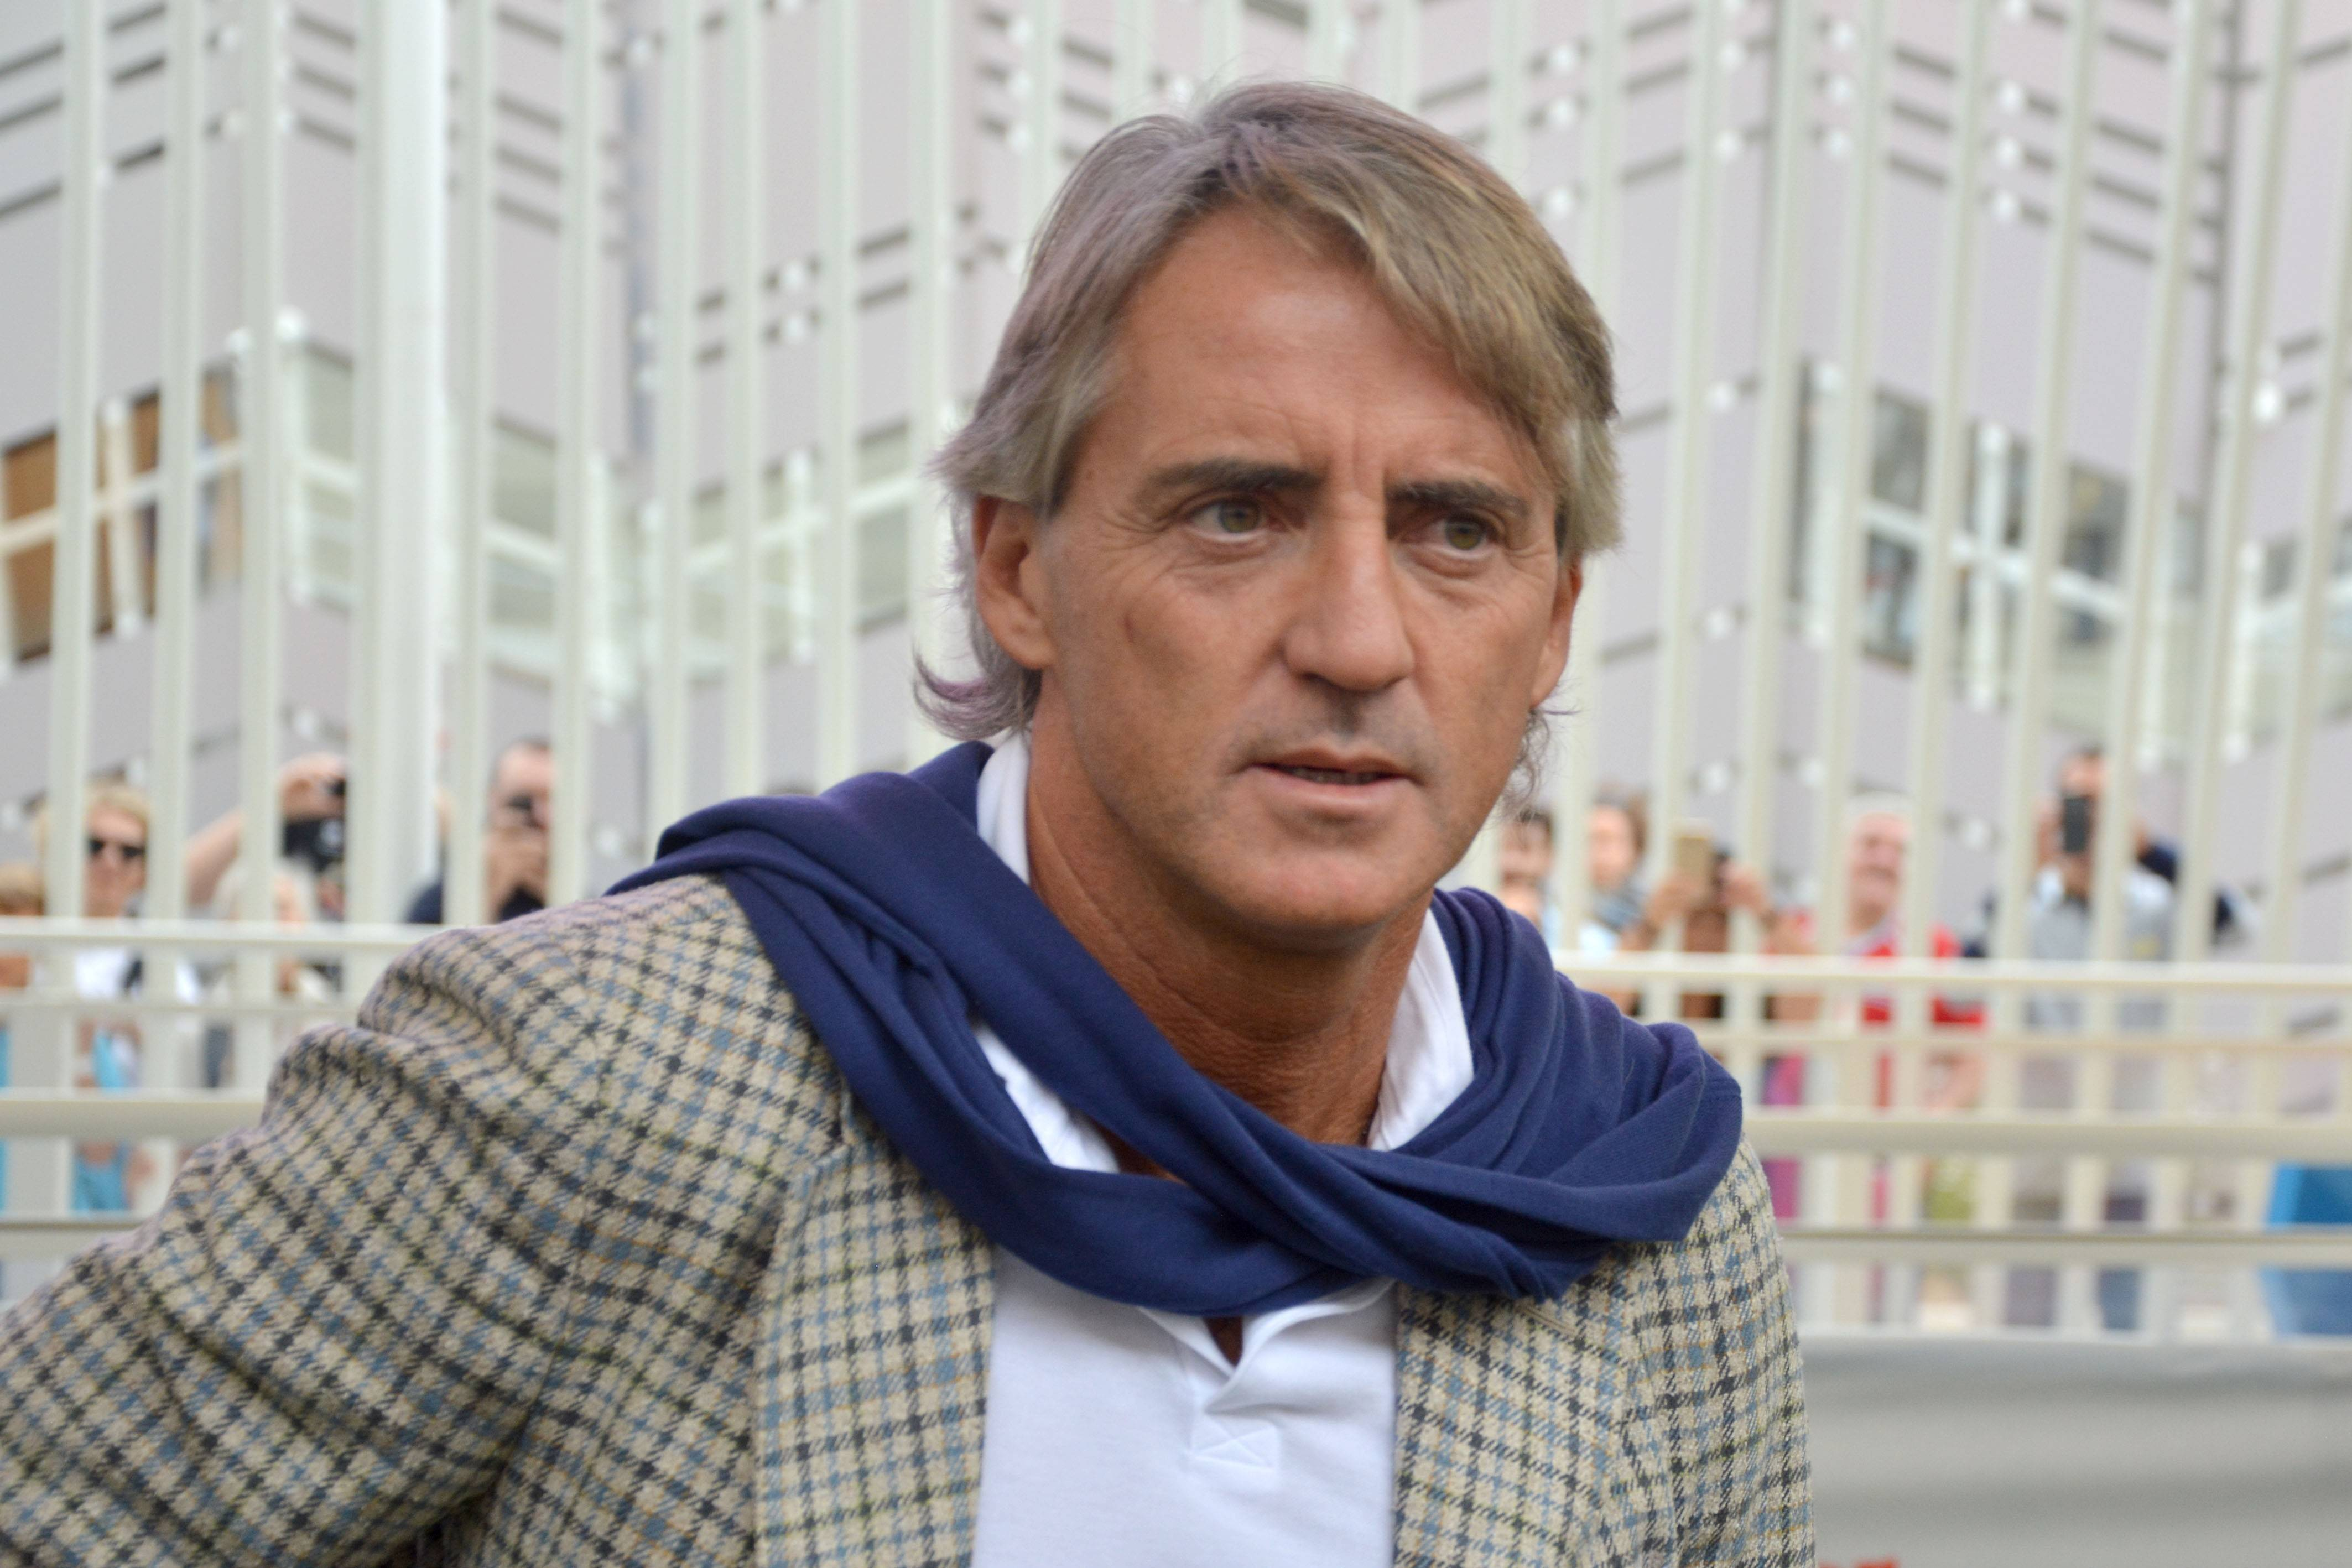 Roberto Mancini turned down offer from China